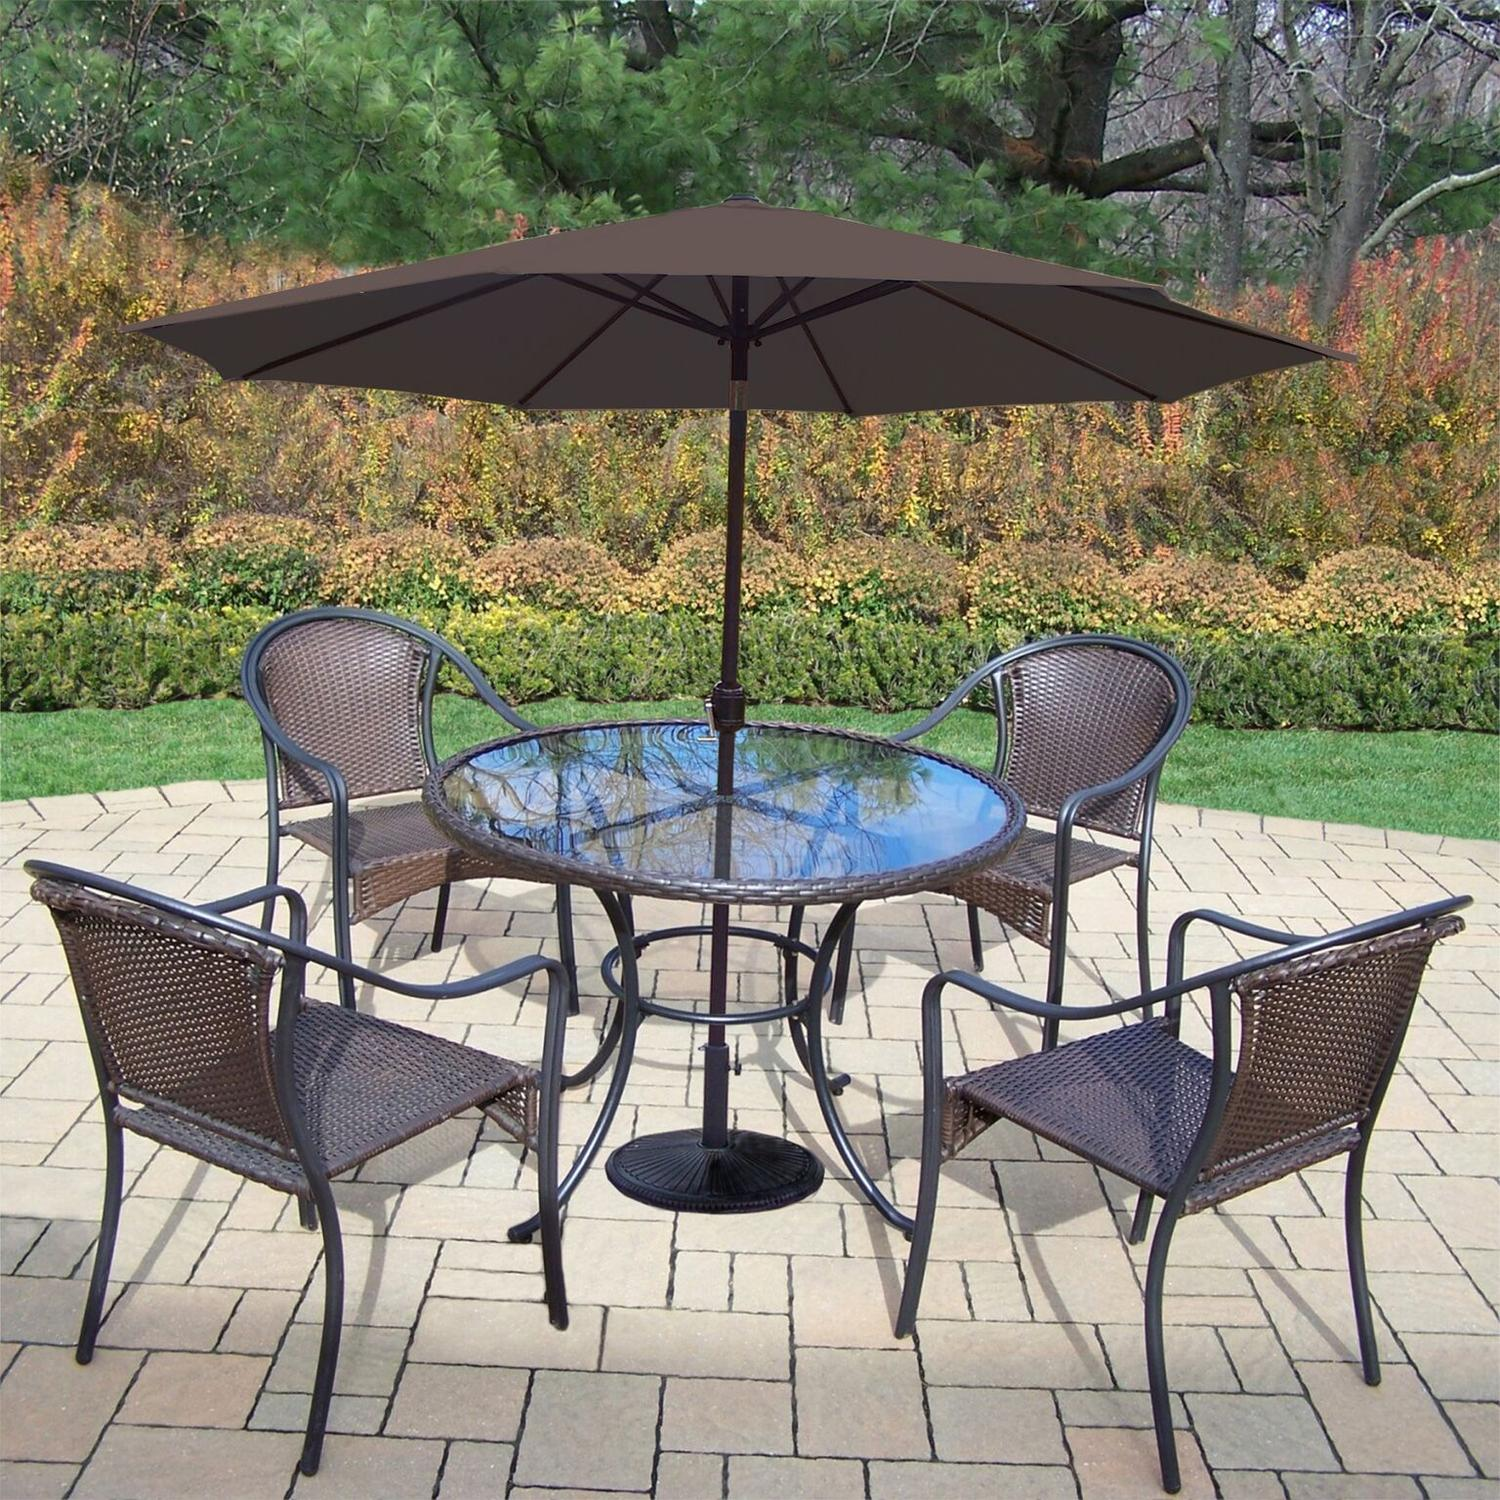 7-Piece Coffee Tuscany All-Weather Resin Wicker Dining Set w/ Brown Umbrella & Weight